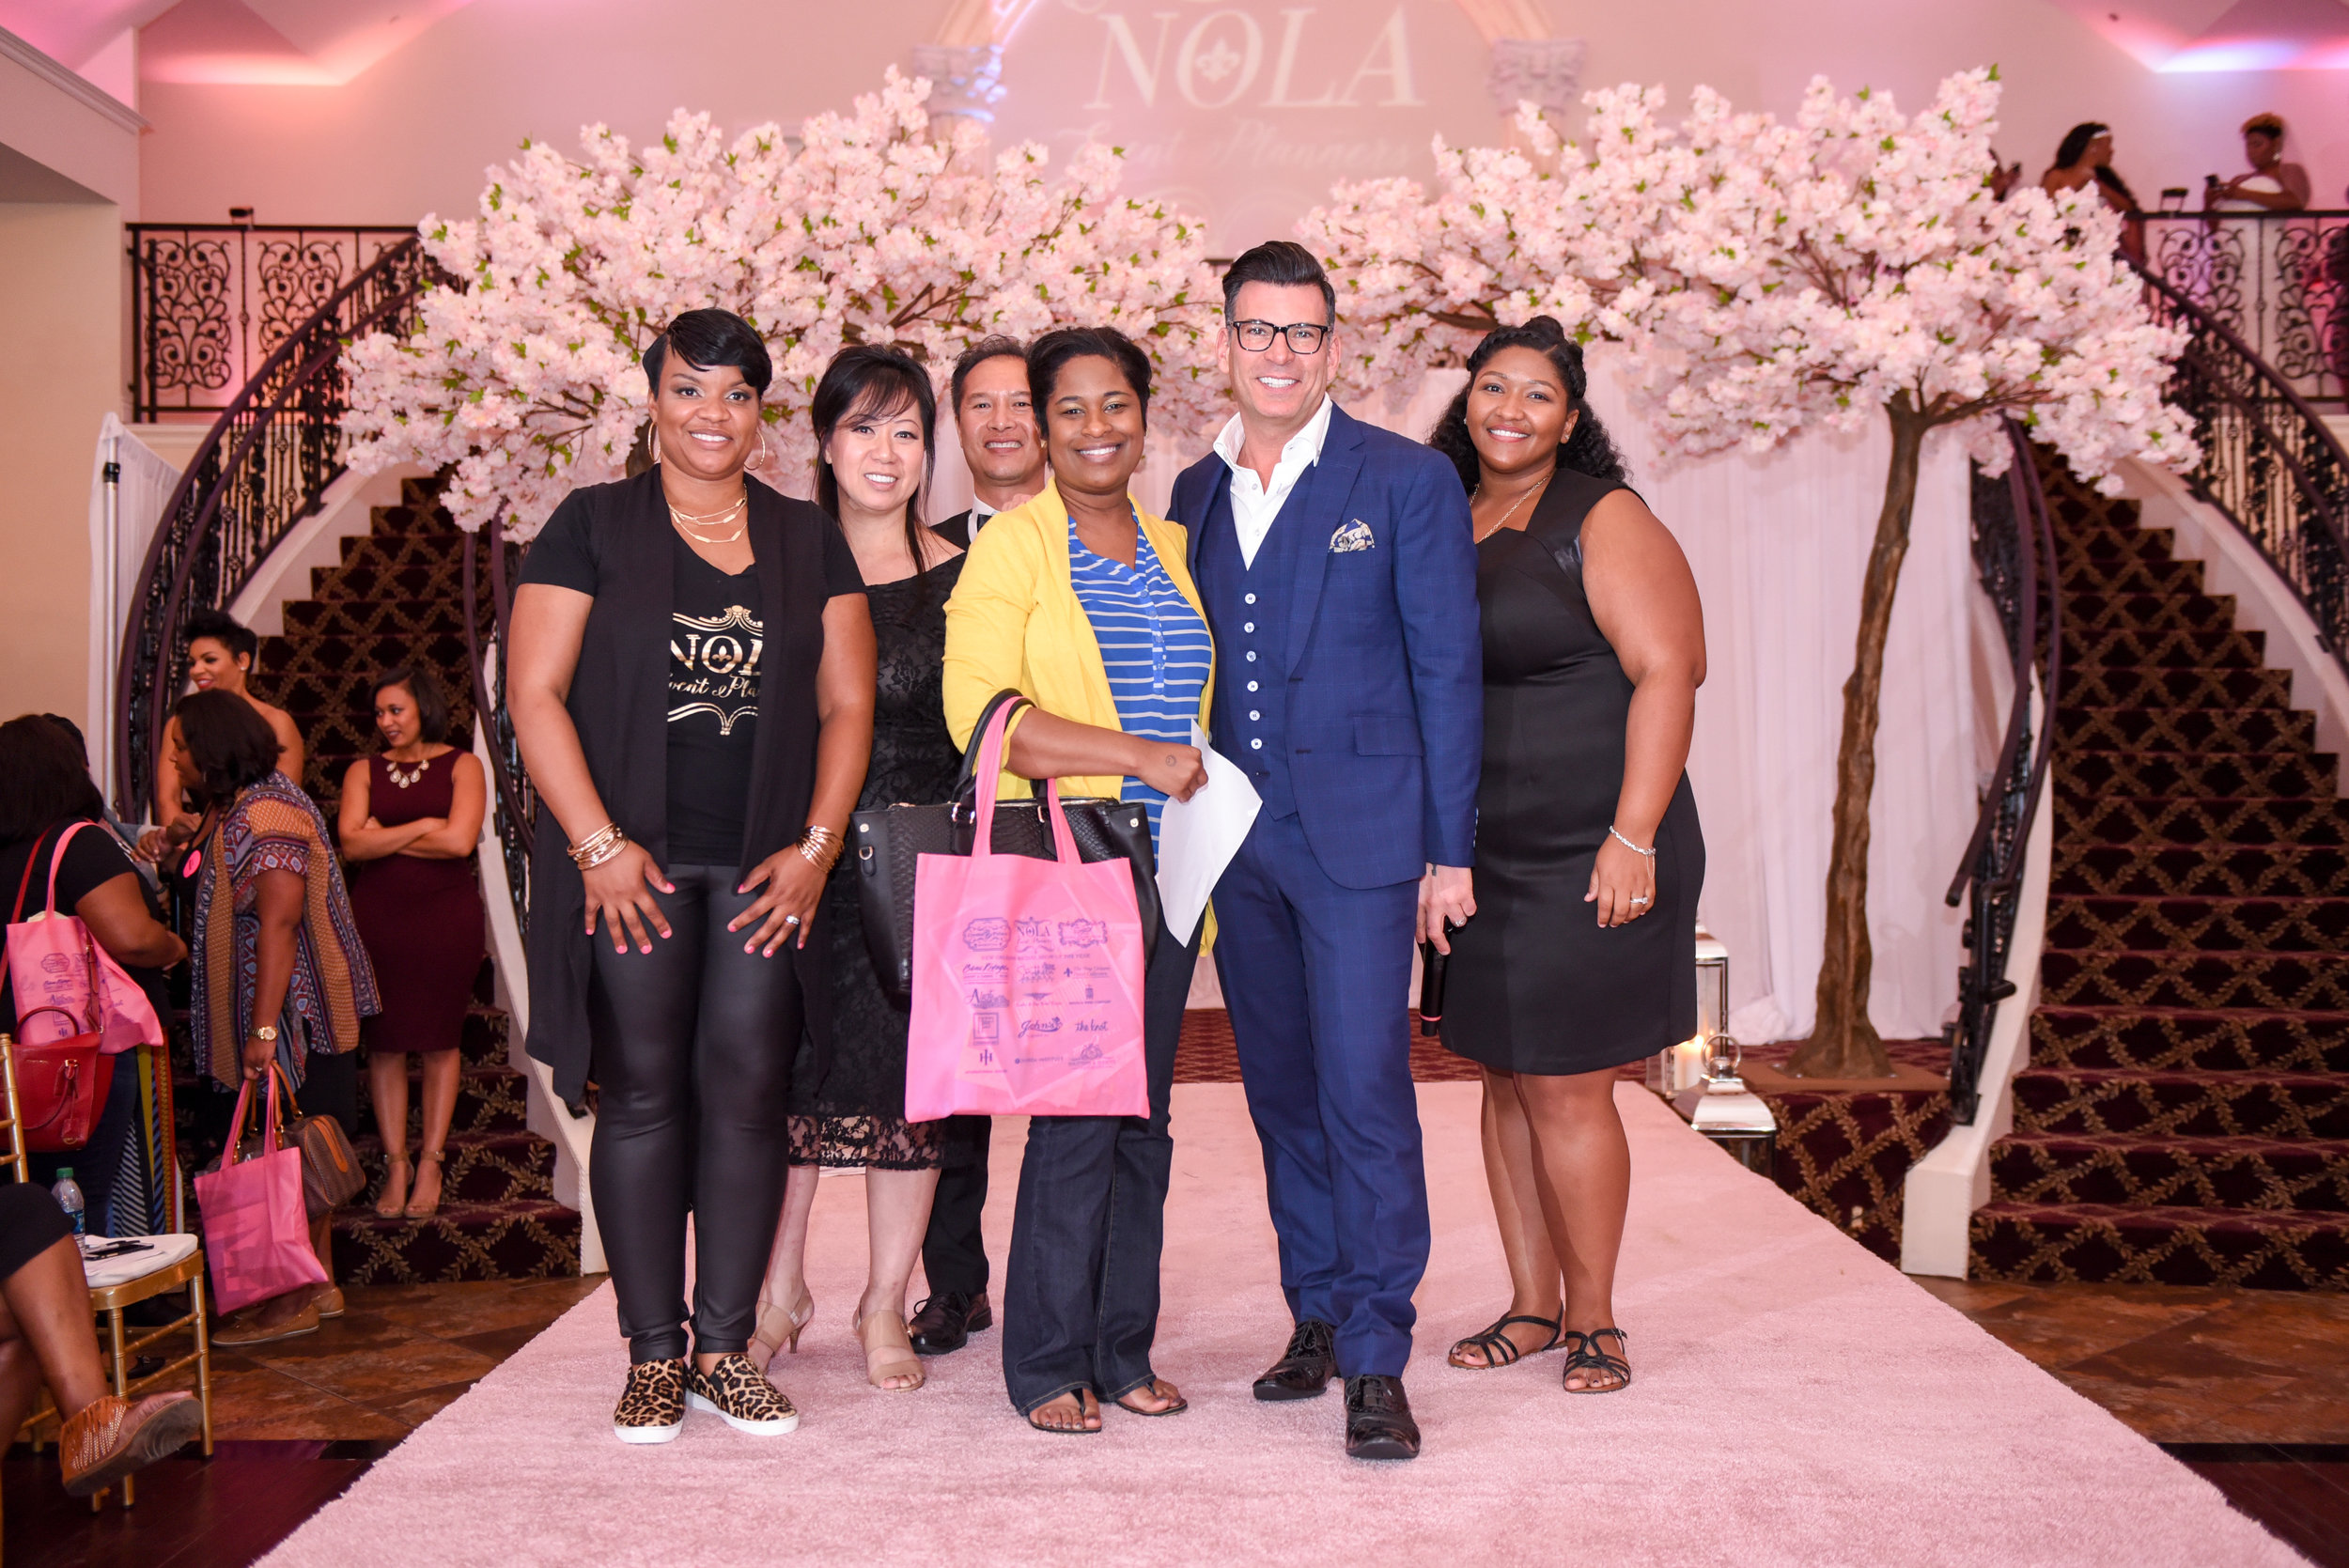 David Tutera Rocks Nola-Promo-35.JPG